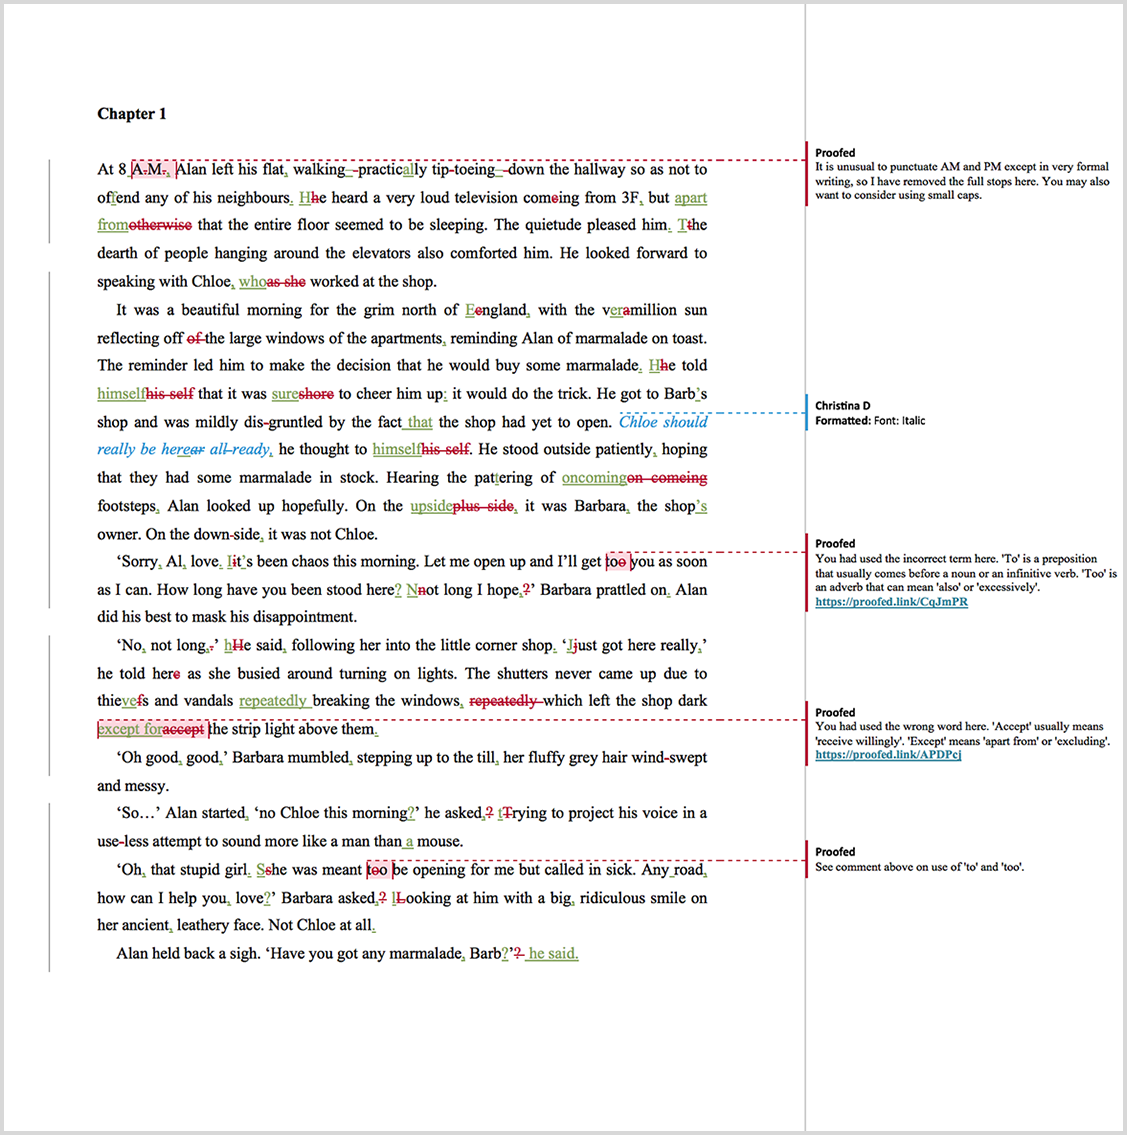 Book proofreading example after editing